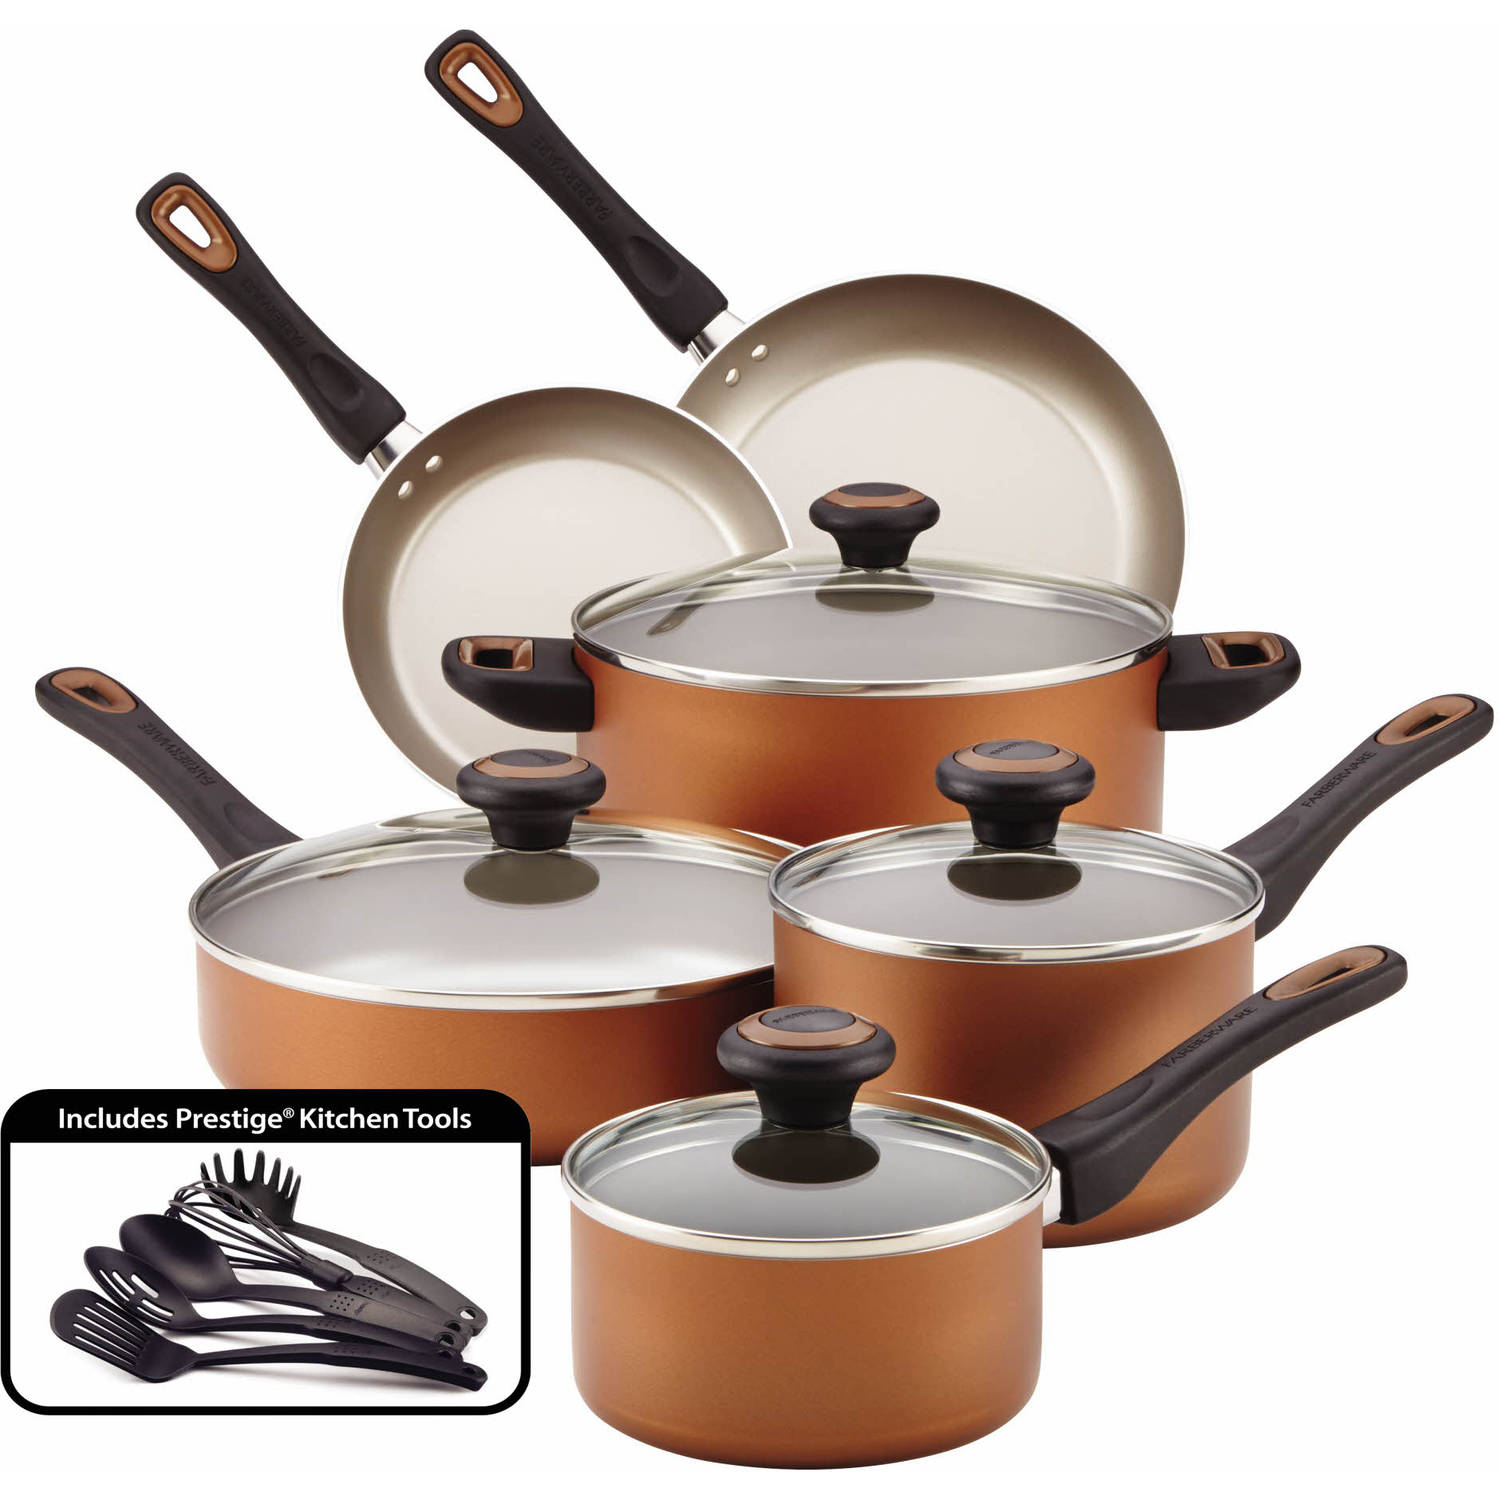 Meyer Corporation Farberware High - Performance Nonstick 15 - Piece Cookware Set, Copper